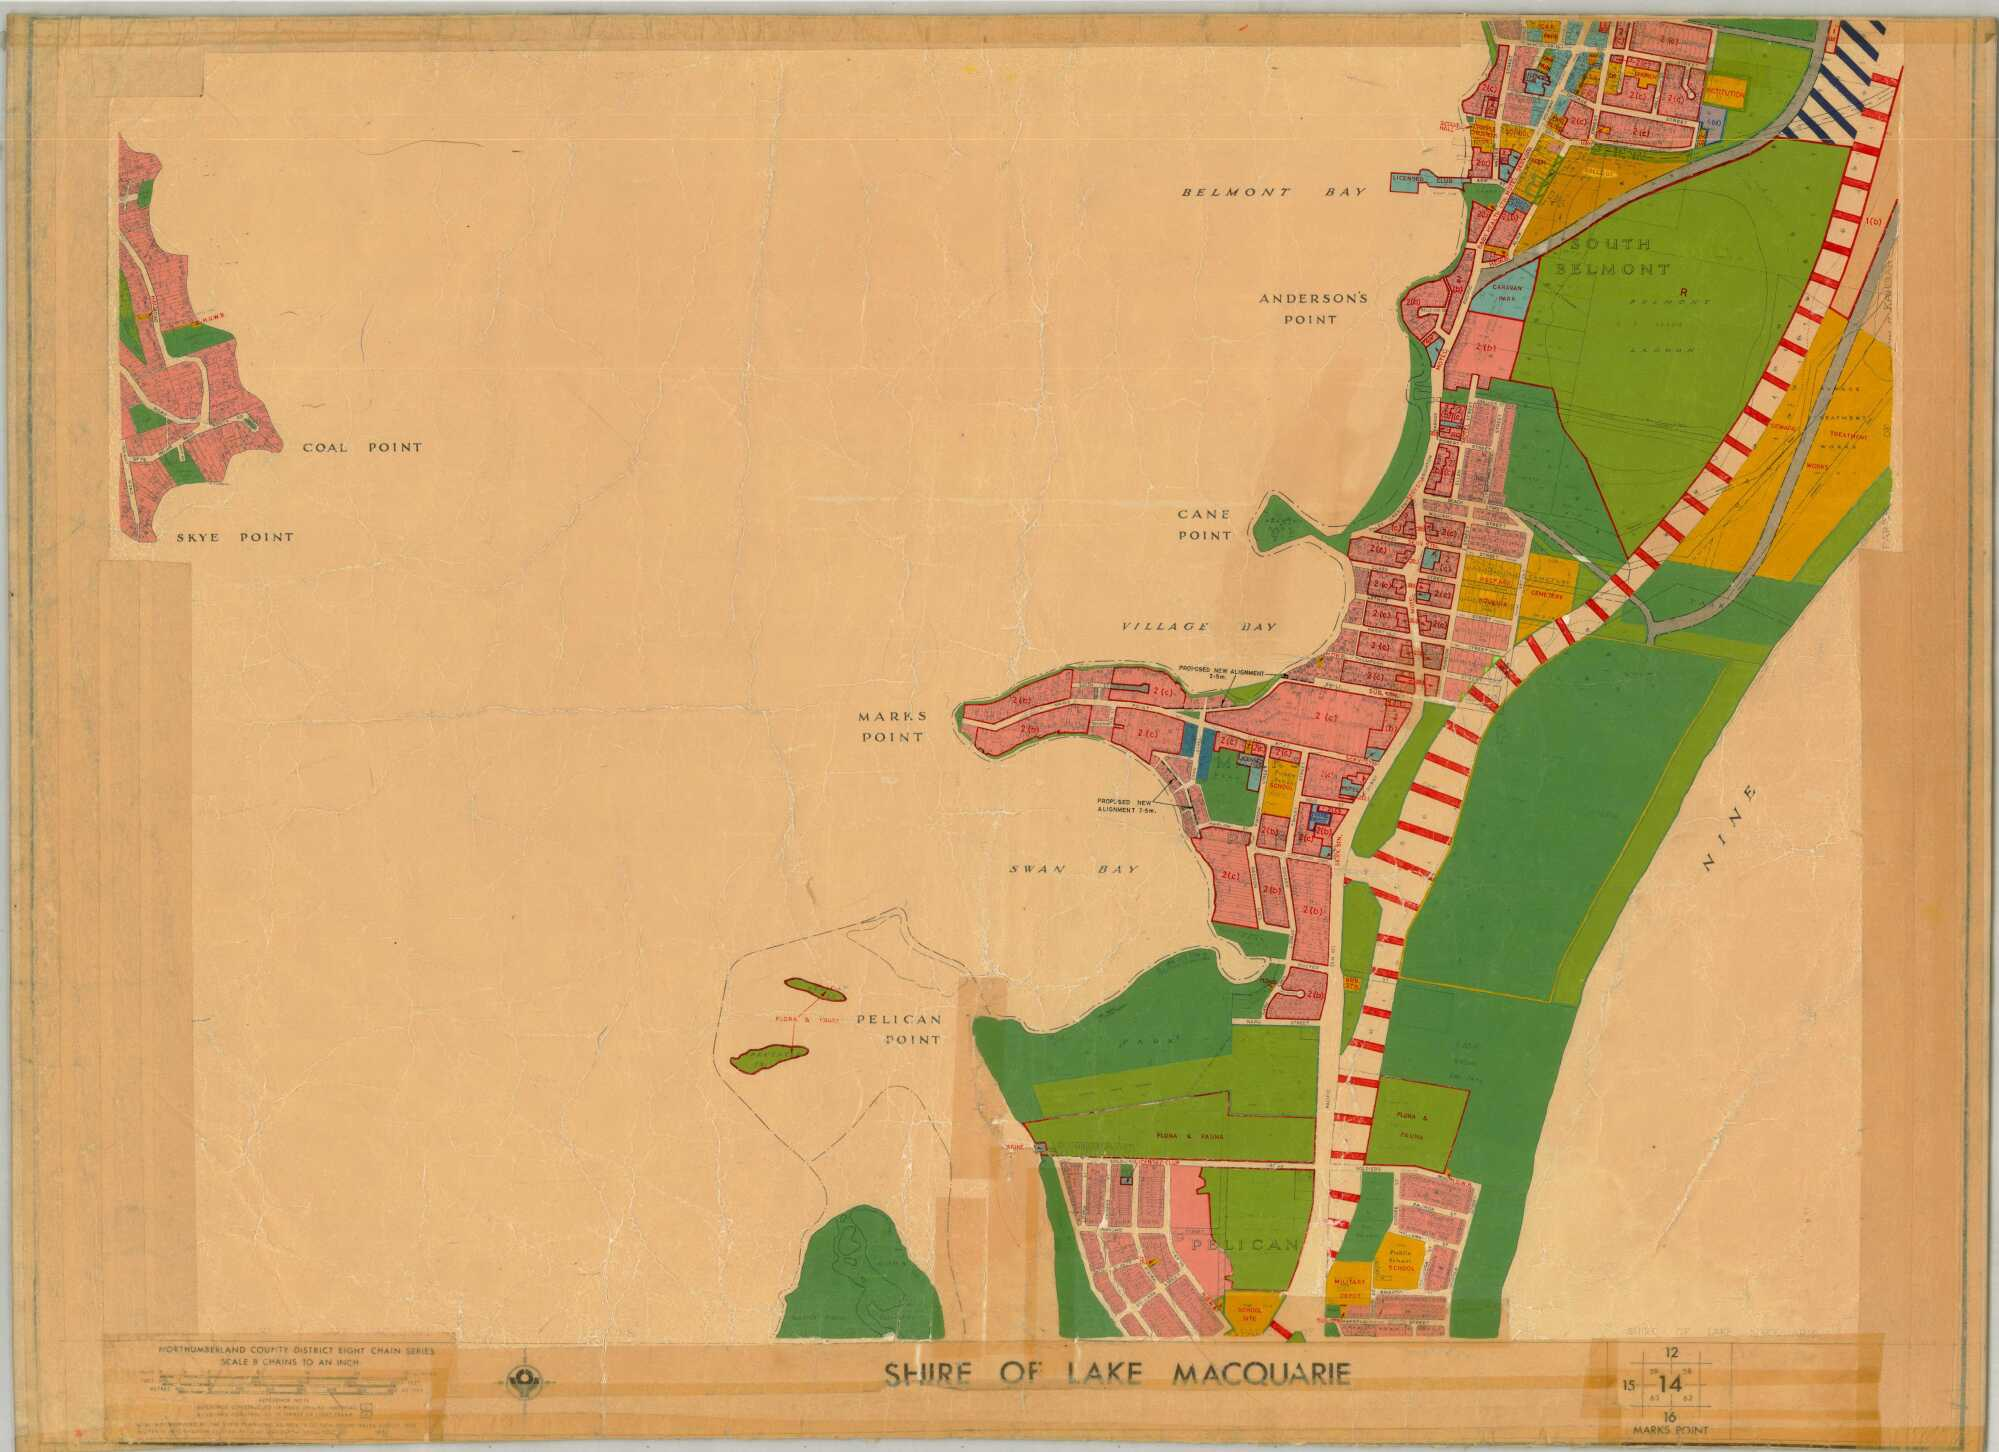 Marks Point Northumberland County District Scheme Map Shire Of - Marks lake maps